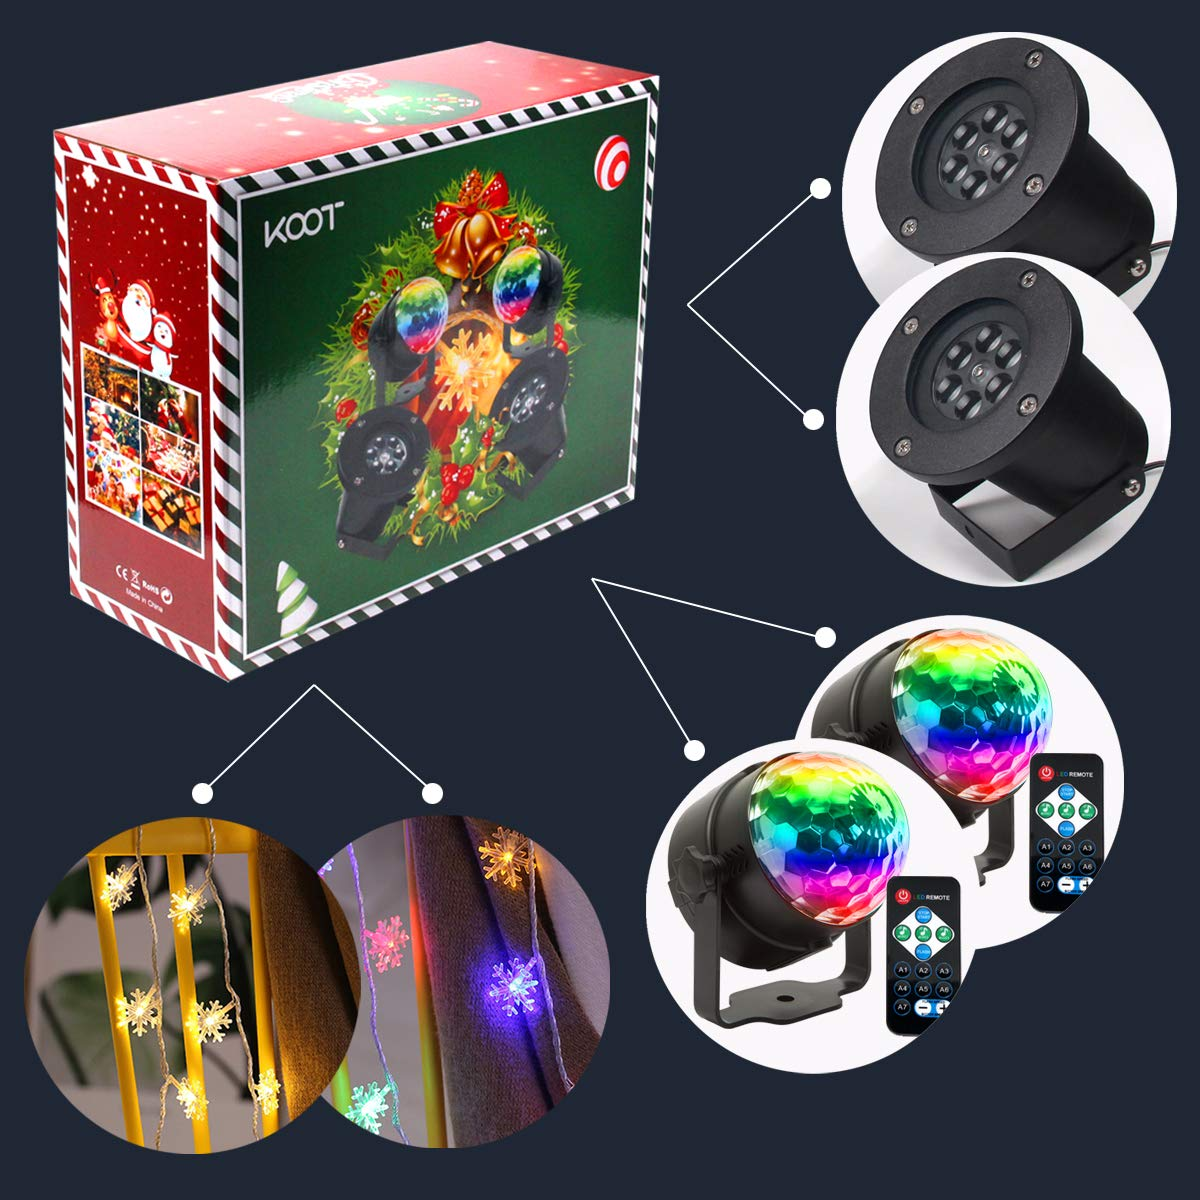 Christmas Light Projector Set Halloween Holiday Decorative Lights (2 Snowflake String Light +2 White Rotating Snowflake Projector +2 Disco Ball Light) for Dance Party Thanksgiving (6pcs) by KOOT